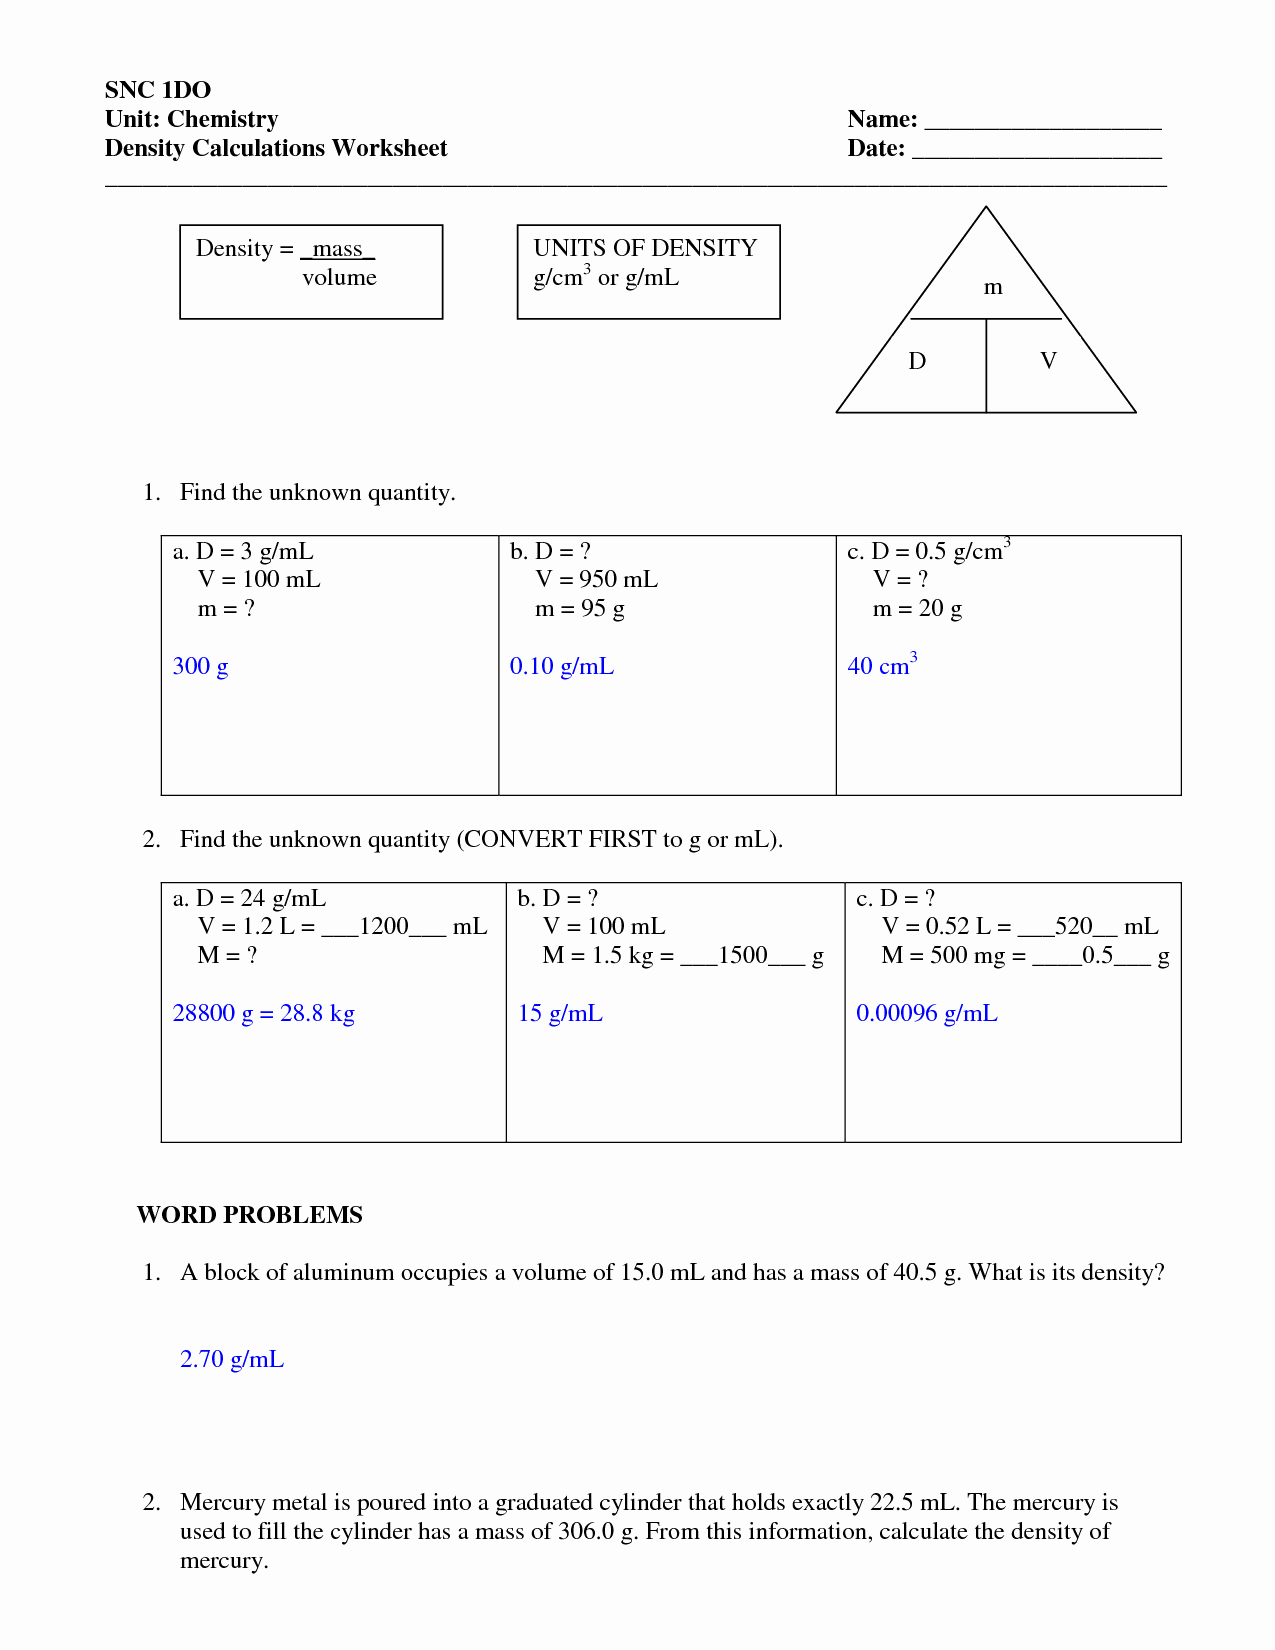 Density Calculations Worksheet Answers Best Of Density Worksheets with Answers